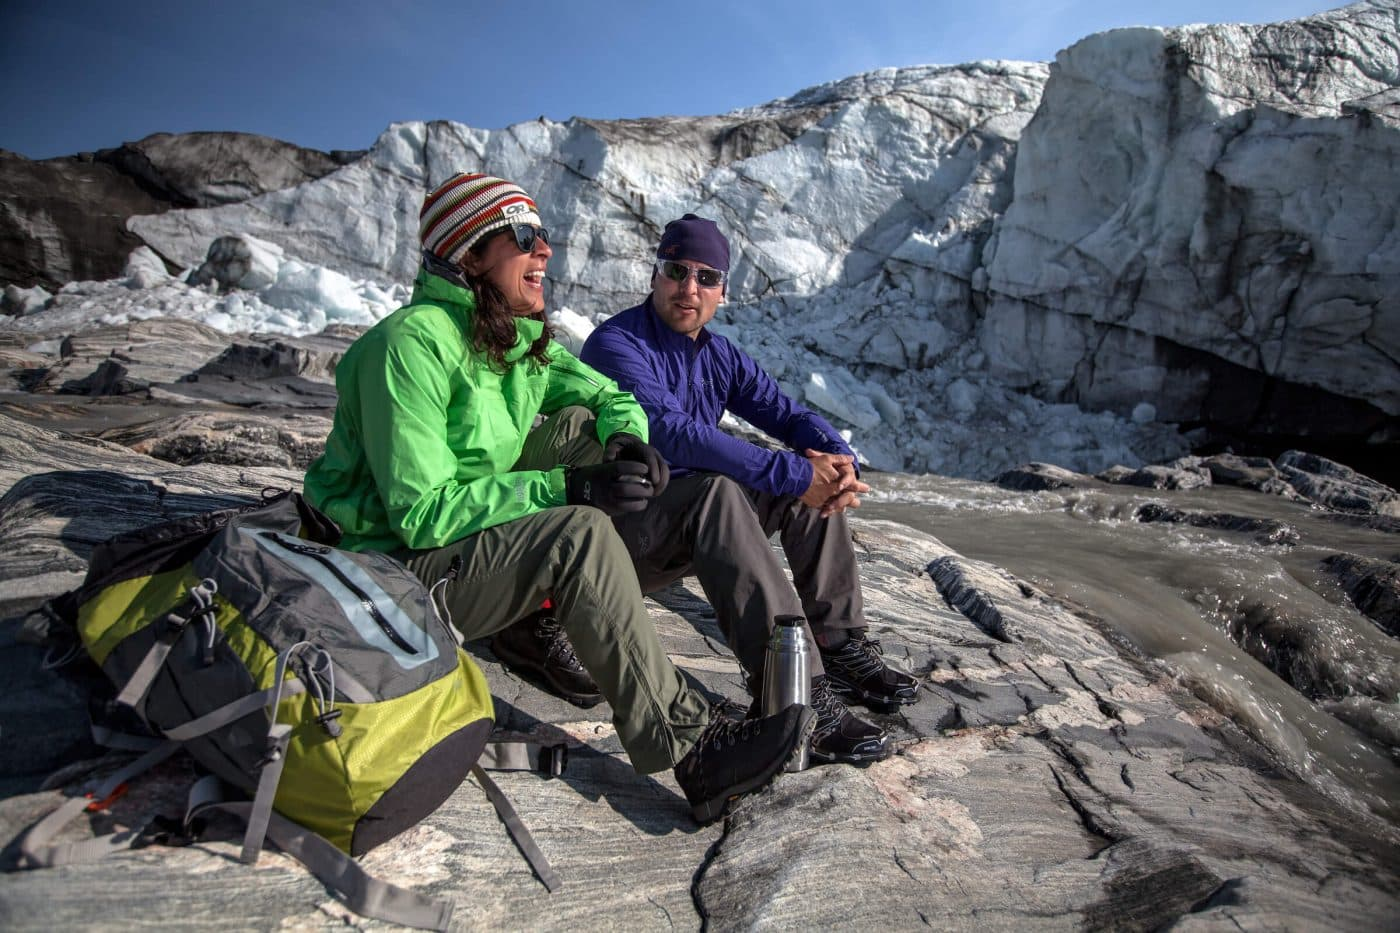 Two hikers enjoying a day in the sun by the Russell Glacier near Kangerlussuaq in Greenland, by Mads Pihl